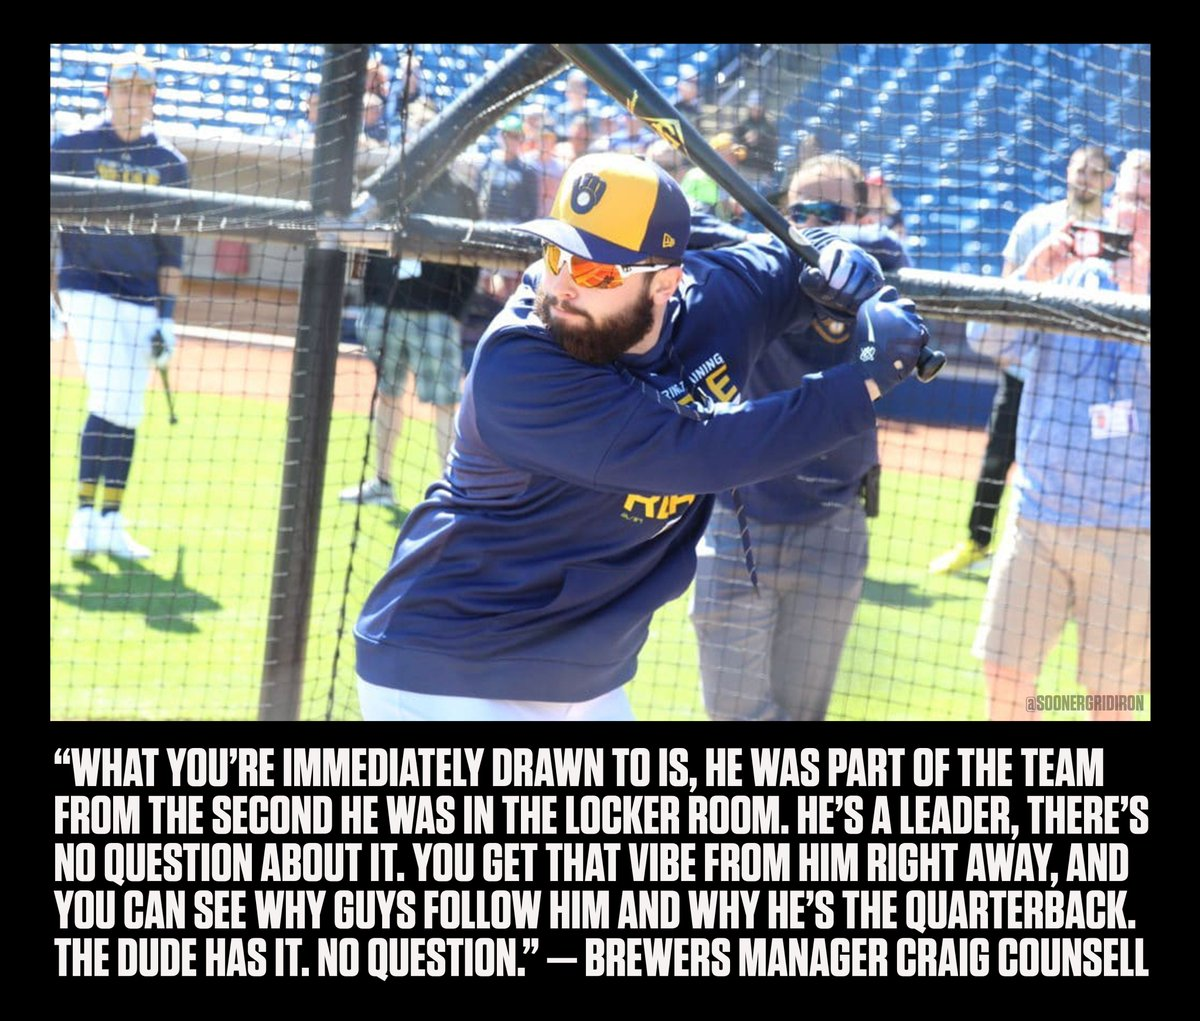 Milwaukee Brewers Manager Craig Counsell on Baker Mayfield.  &quot;You can see why guys follow him and why he&#39;s the quarterback. The dude has it. No question.&quot;  #OUDNA | #BoomerSooner<br>http://pic.twitter.com/vp3Lv9b38O